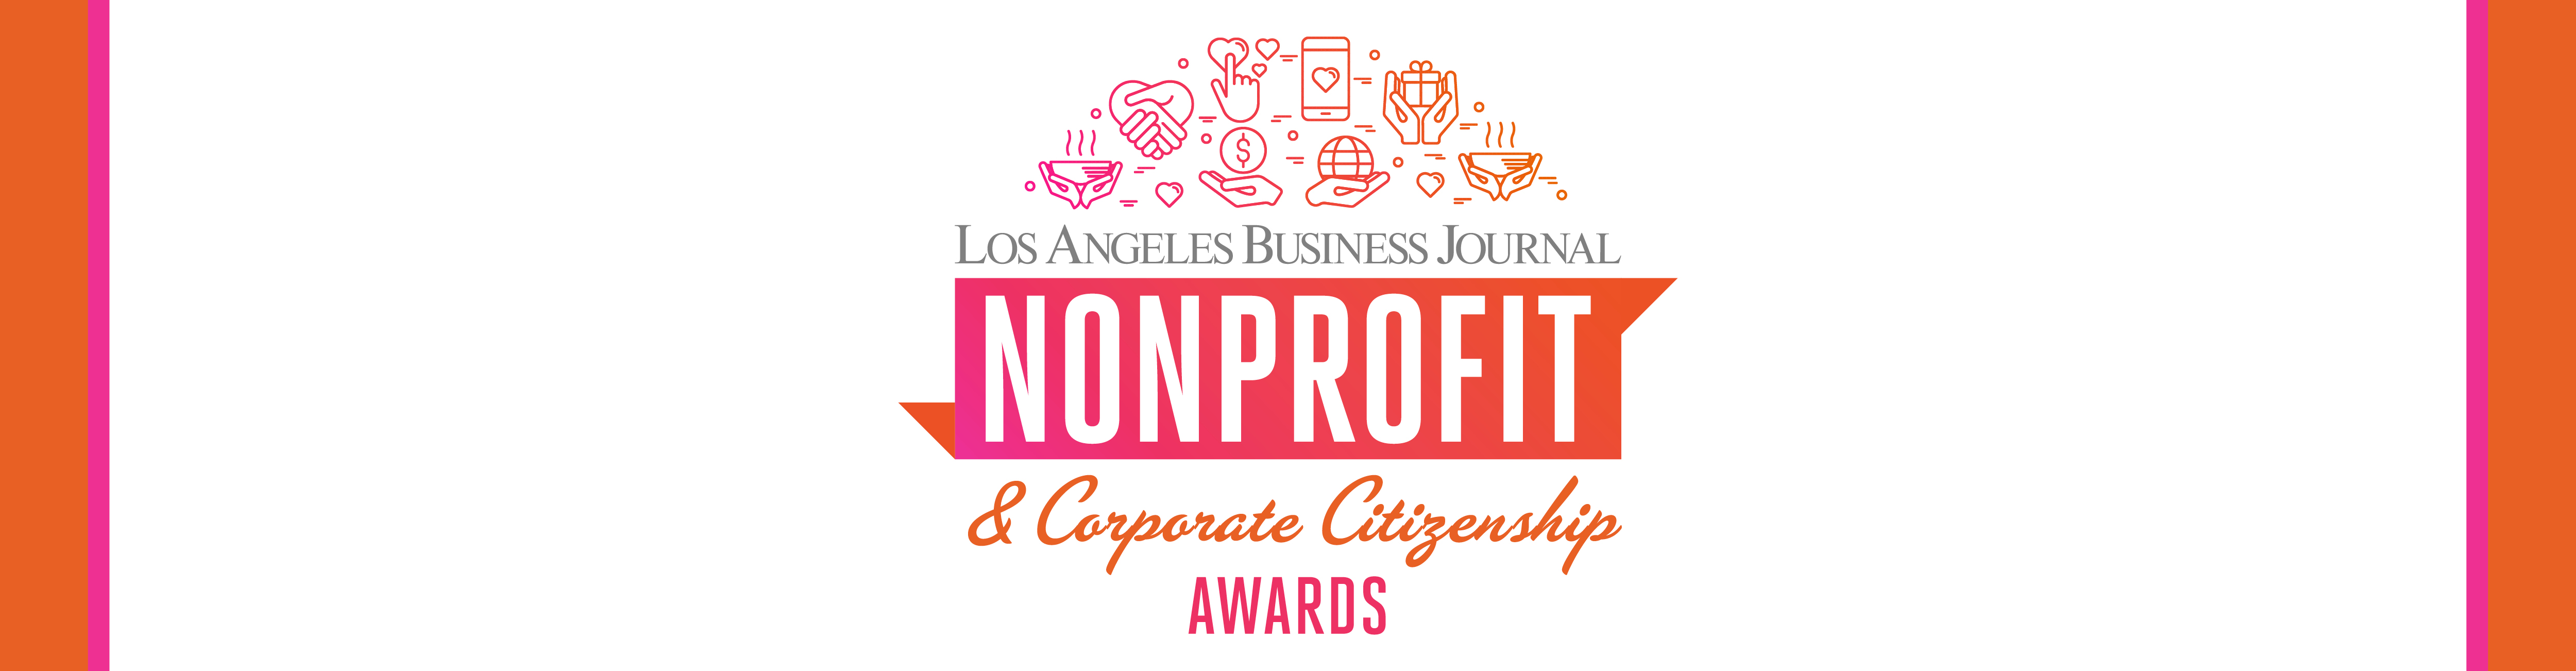 Los Angeles Business Journal Nonprofit & Corporate Citizenship Awards Event Banner